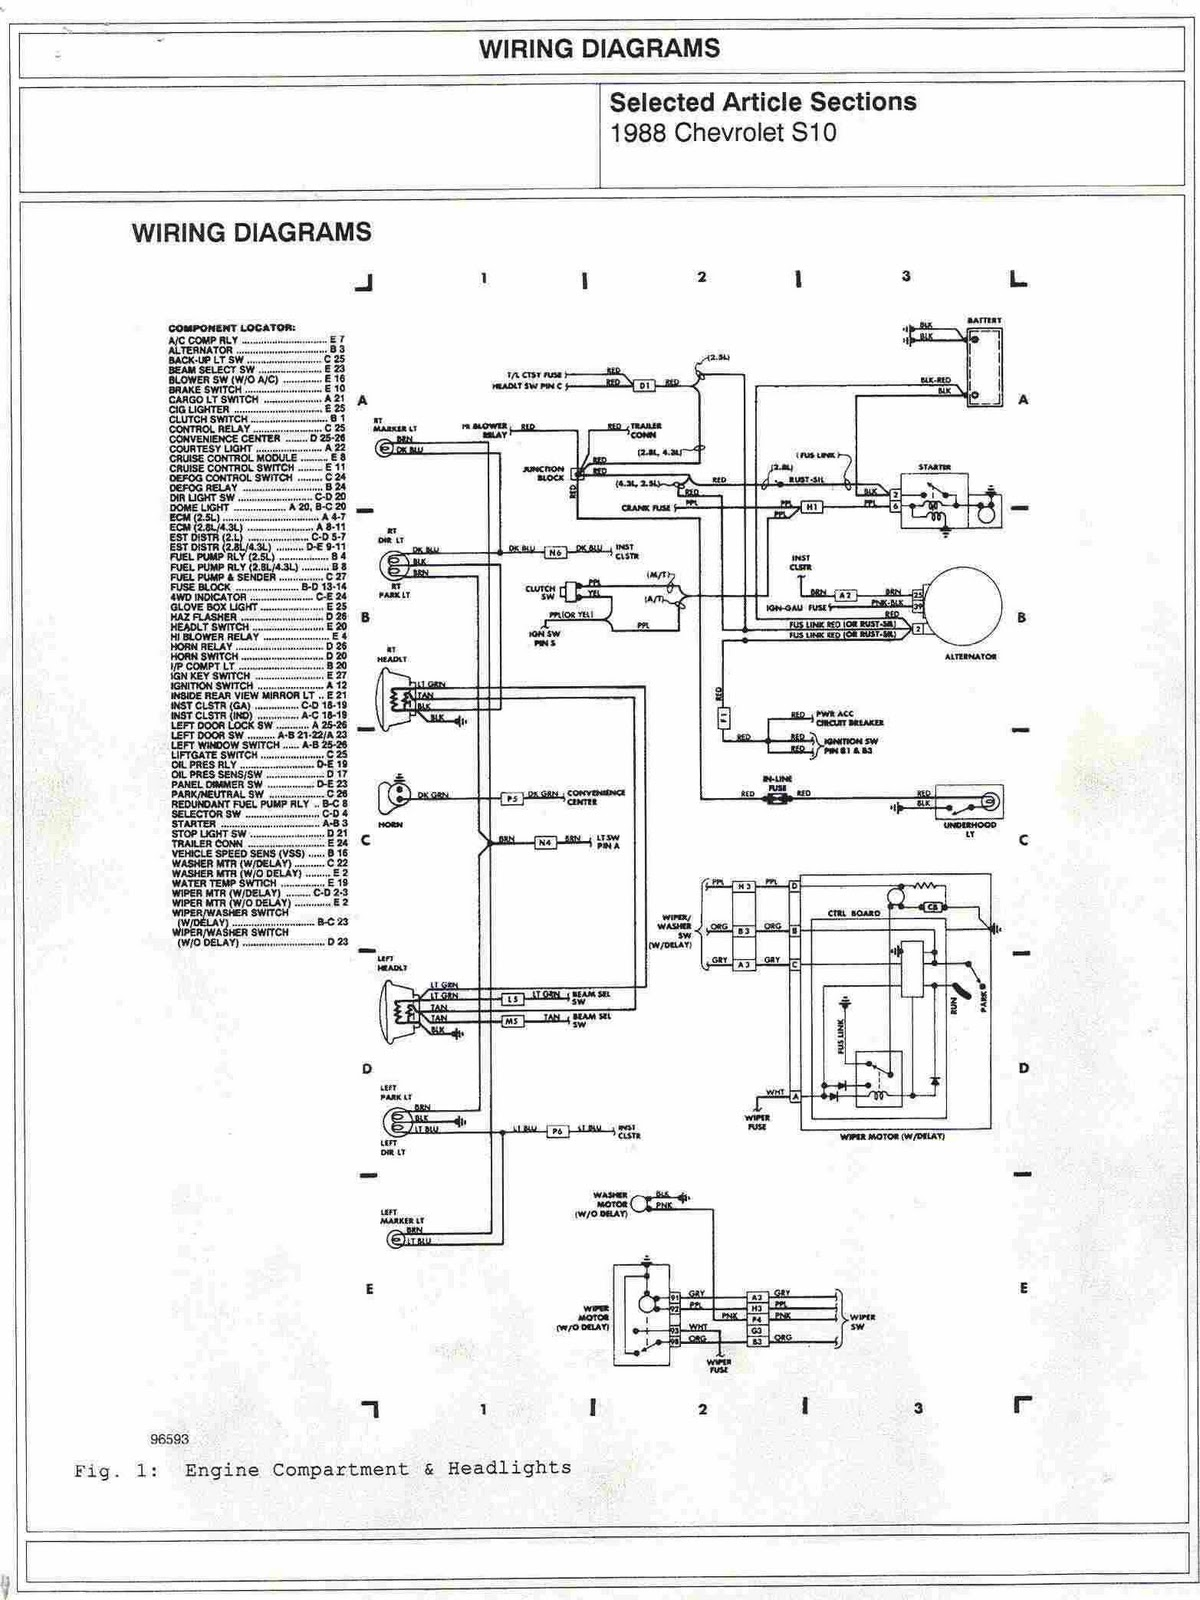 2009 Chevy Express Fuel System Control Module Wiring Schematic 62 1990 Ezgo Gas Diagram Schematics U2022 1988 Chevrolet S10 Engine Compartment And Headlights